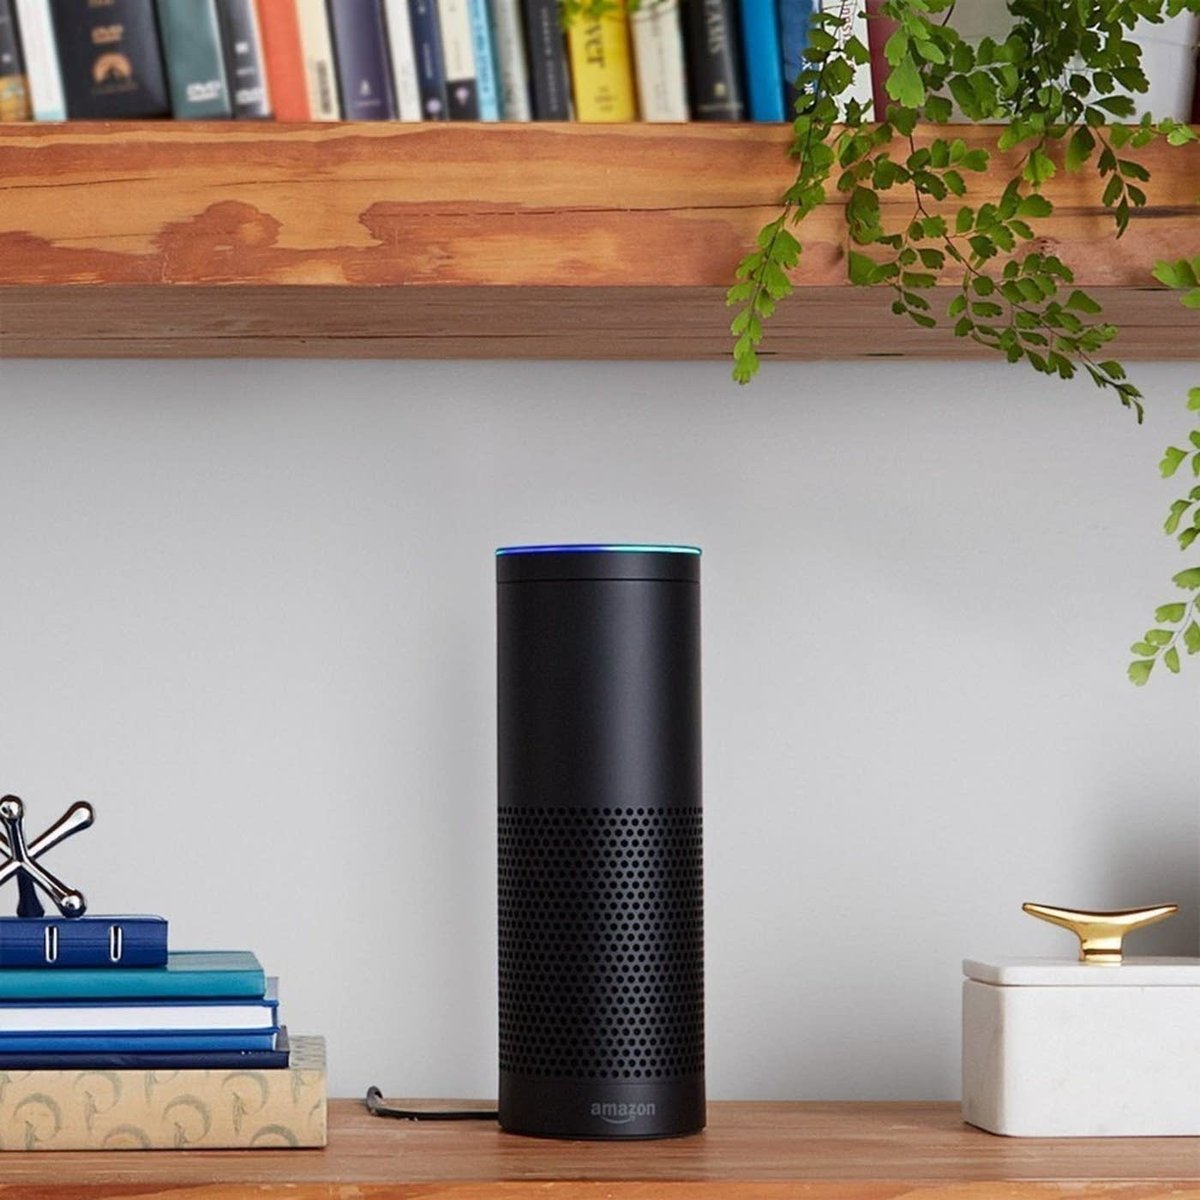 'Listen to Classical MPR on Amazon Echo...